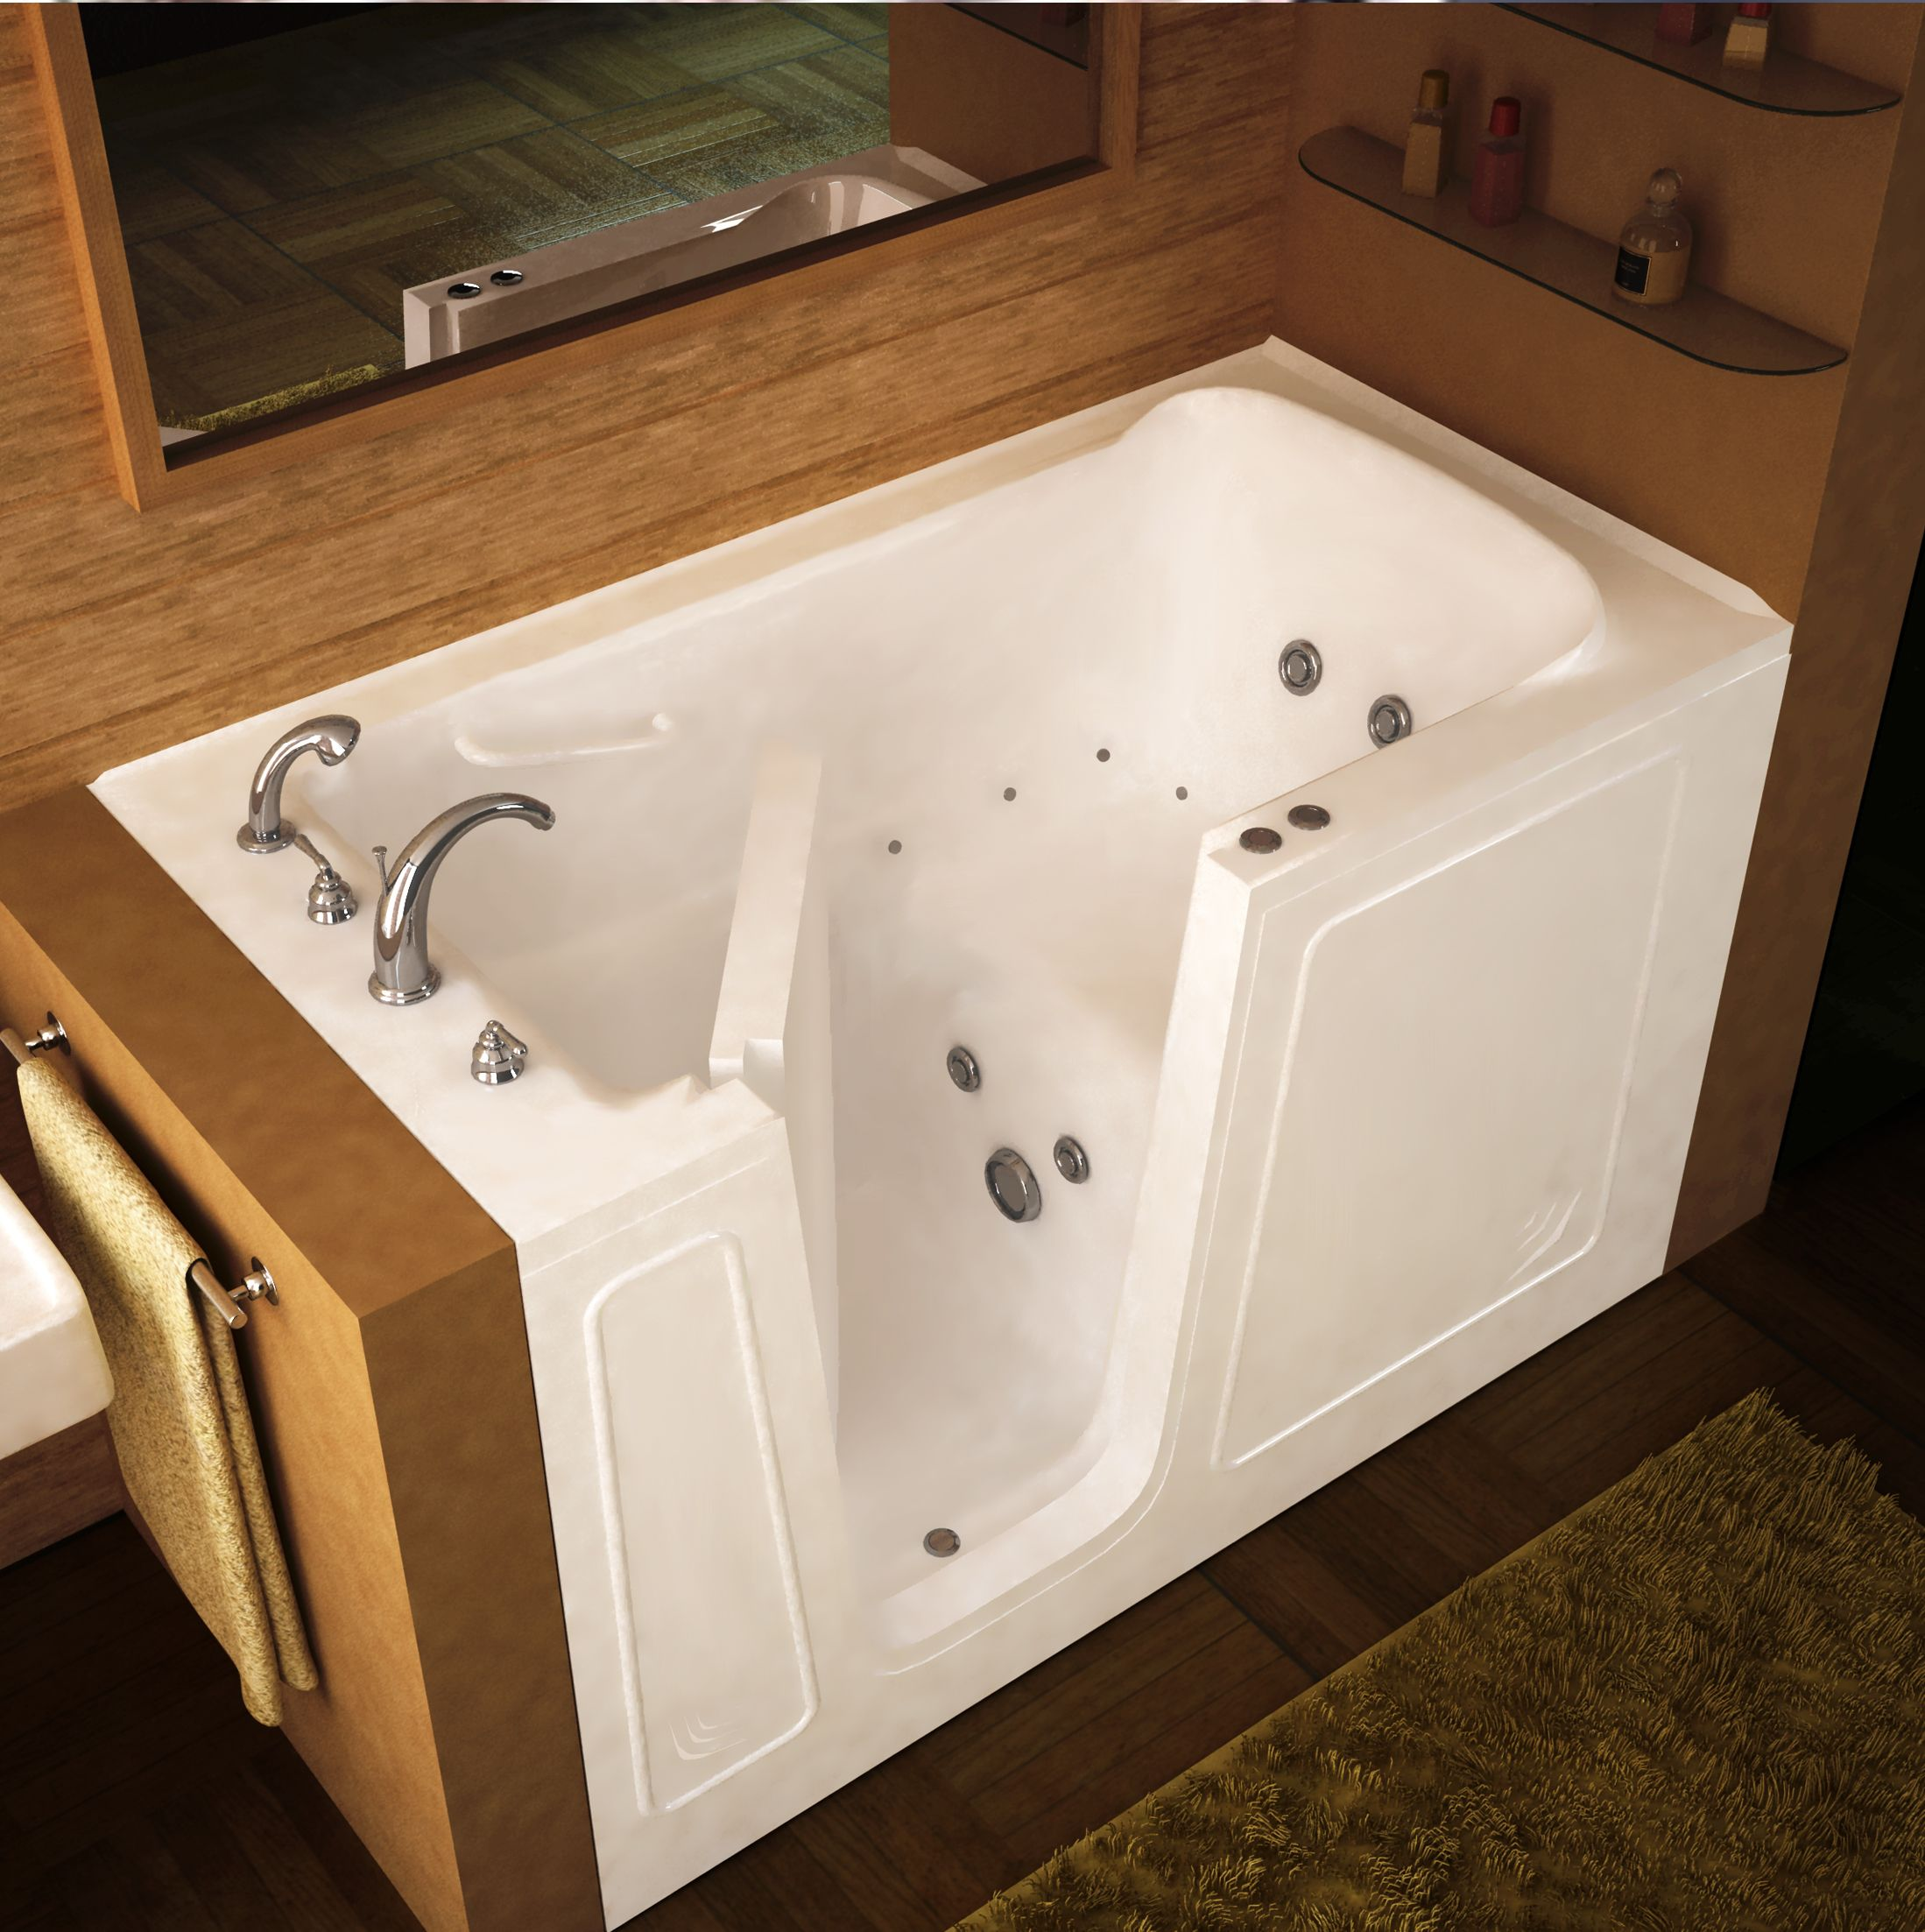 Bathtubs prices | ideas | Pinterest | Bathtub price, Bathtub and ...